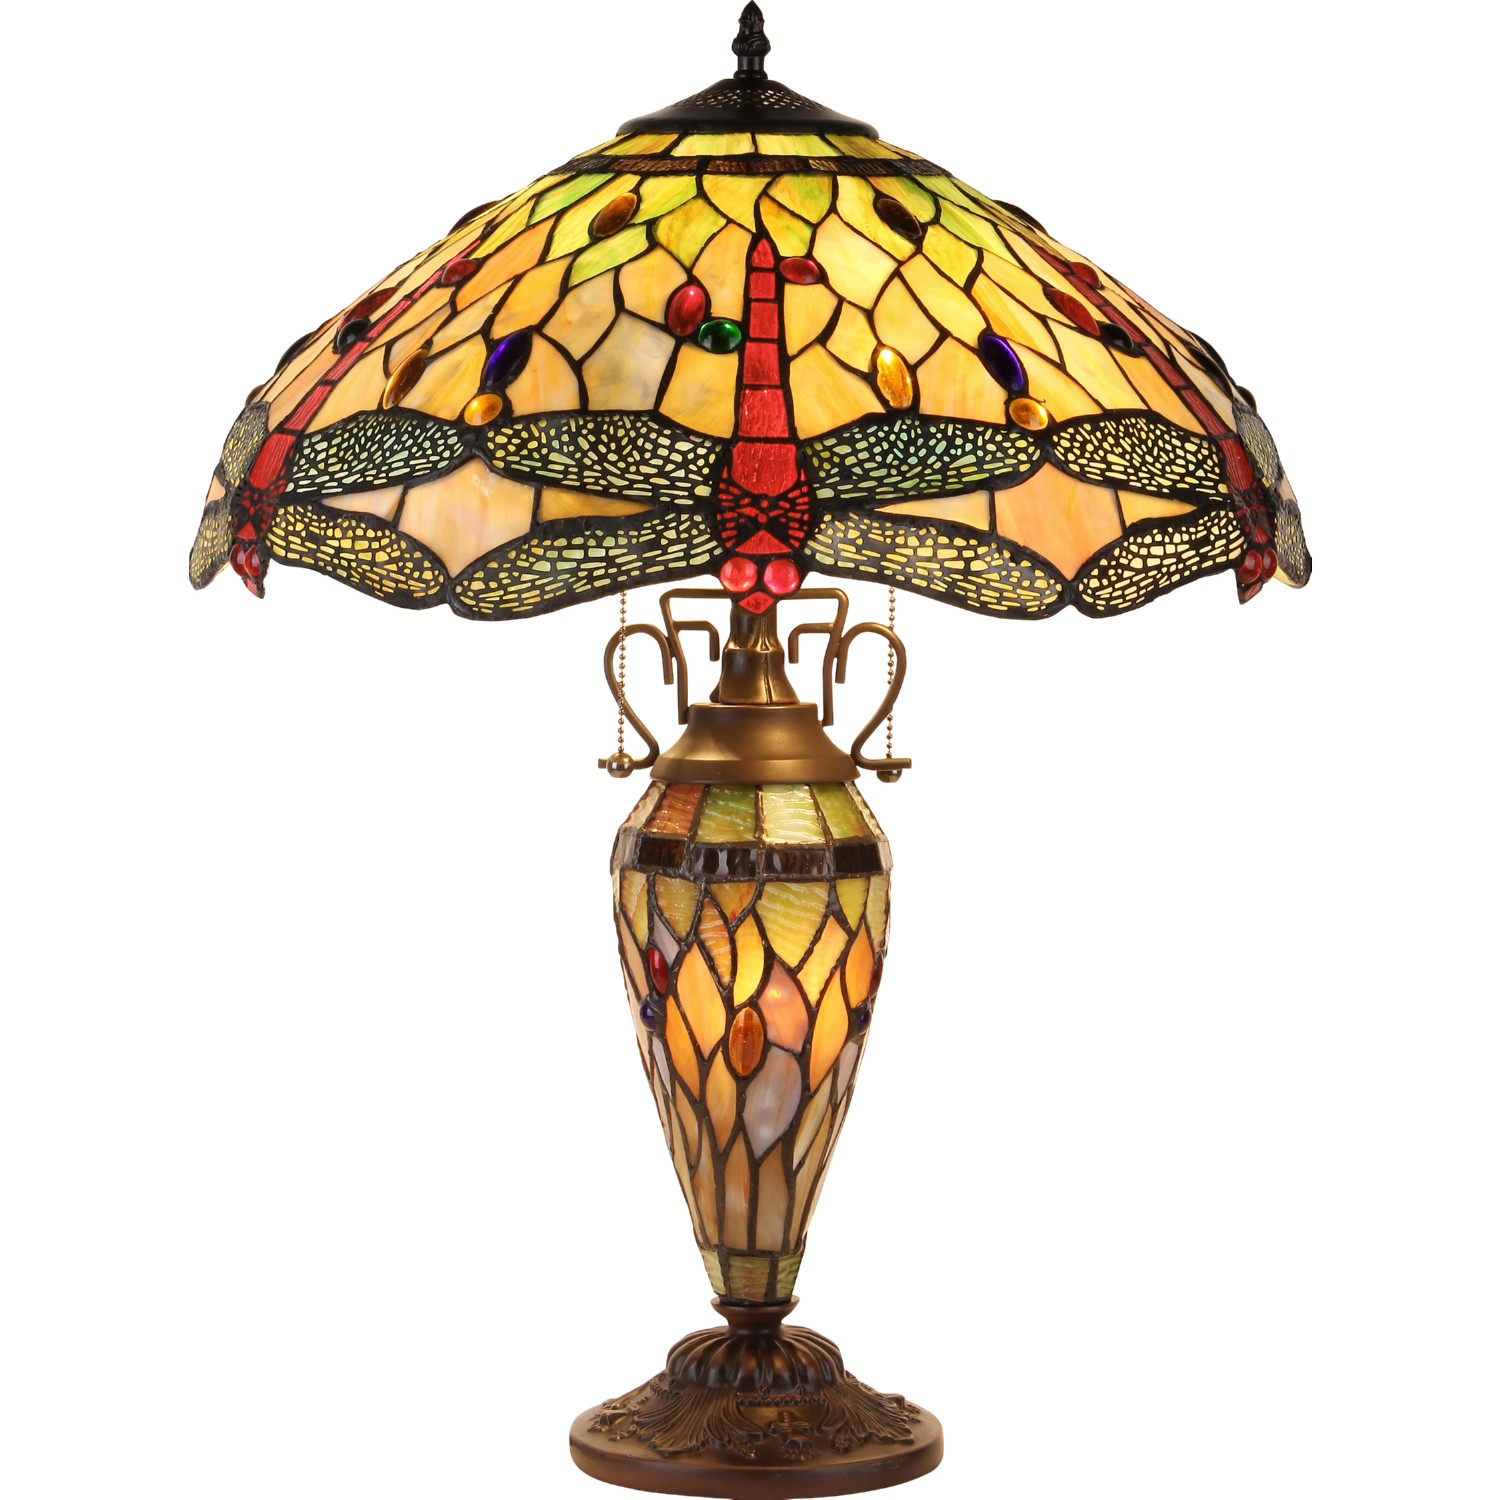 Chloe lighting ch32825db19 dt3 anisoptera purity tiffany for Home decor 32825